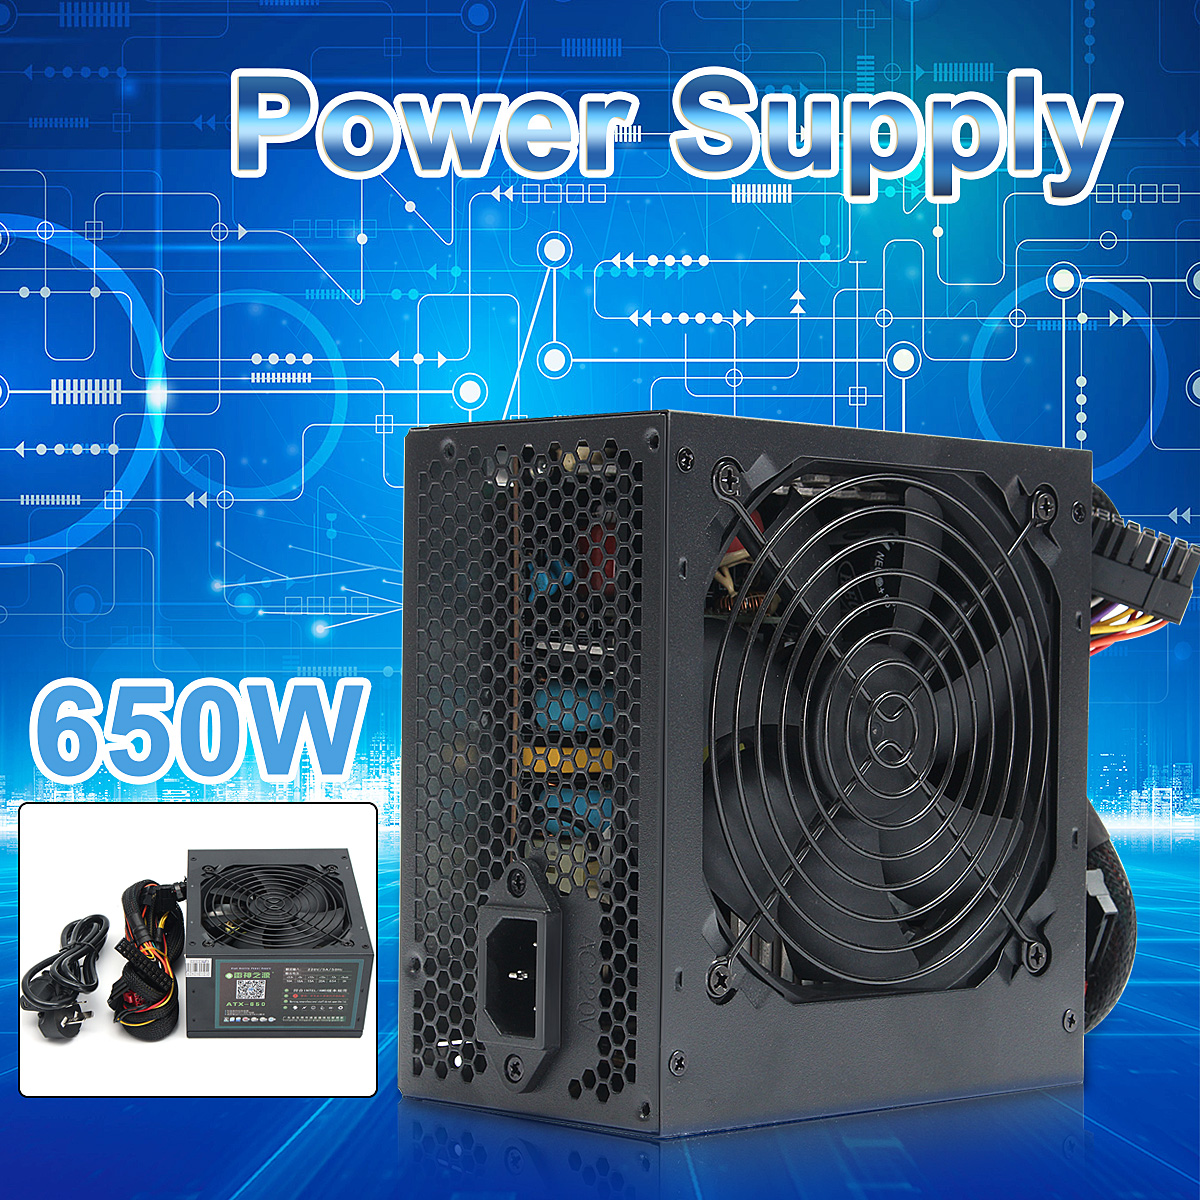 350W 650W Peak- PSU ATX 12V Gaming PC Power Supply 24Pin / Molex / Sata 12CM Fan Computer Power Supply For BTC xinghang 400w pc computer power supply 12v 400w power supply psu peak 500w switching atx power gaming pc desktop 24pin